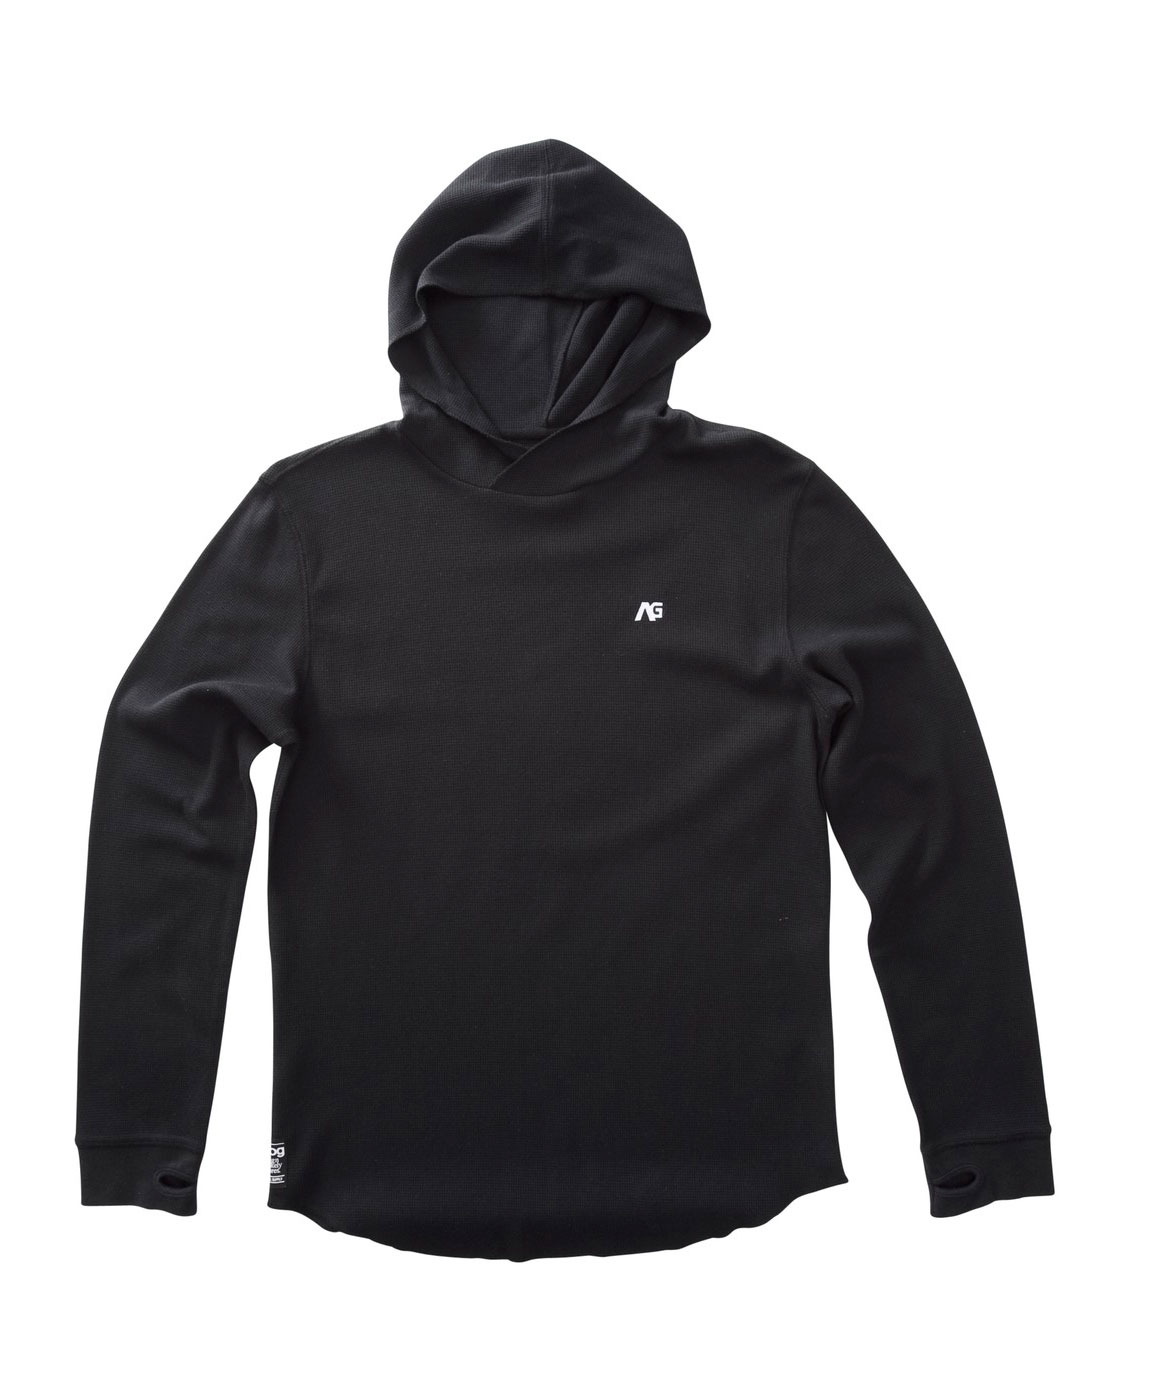 Key Features of the Analog Overlay Hoodie: Cotton/Poly Hooded Thermal With Moisture Wicking And Anti-Bacterial Properties Rib Cuffs With Thumbholes Reg Fit - $32.95